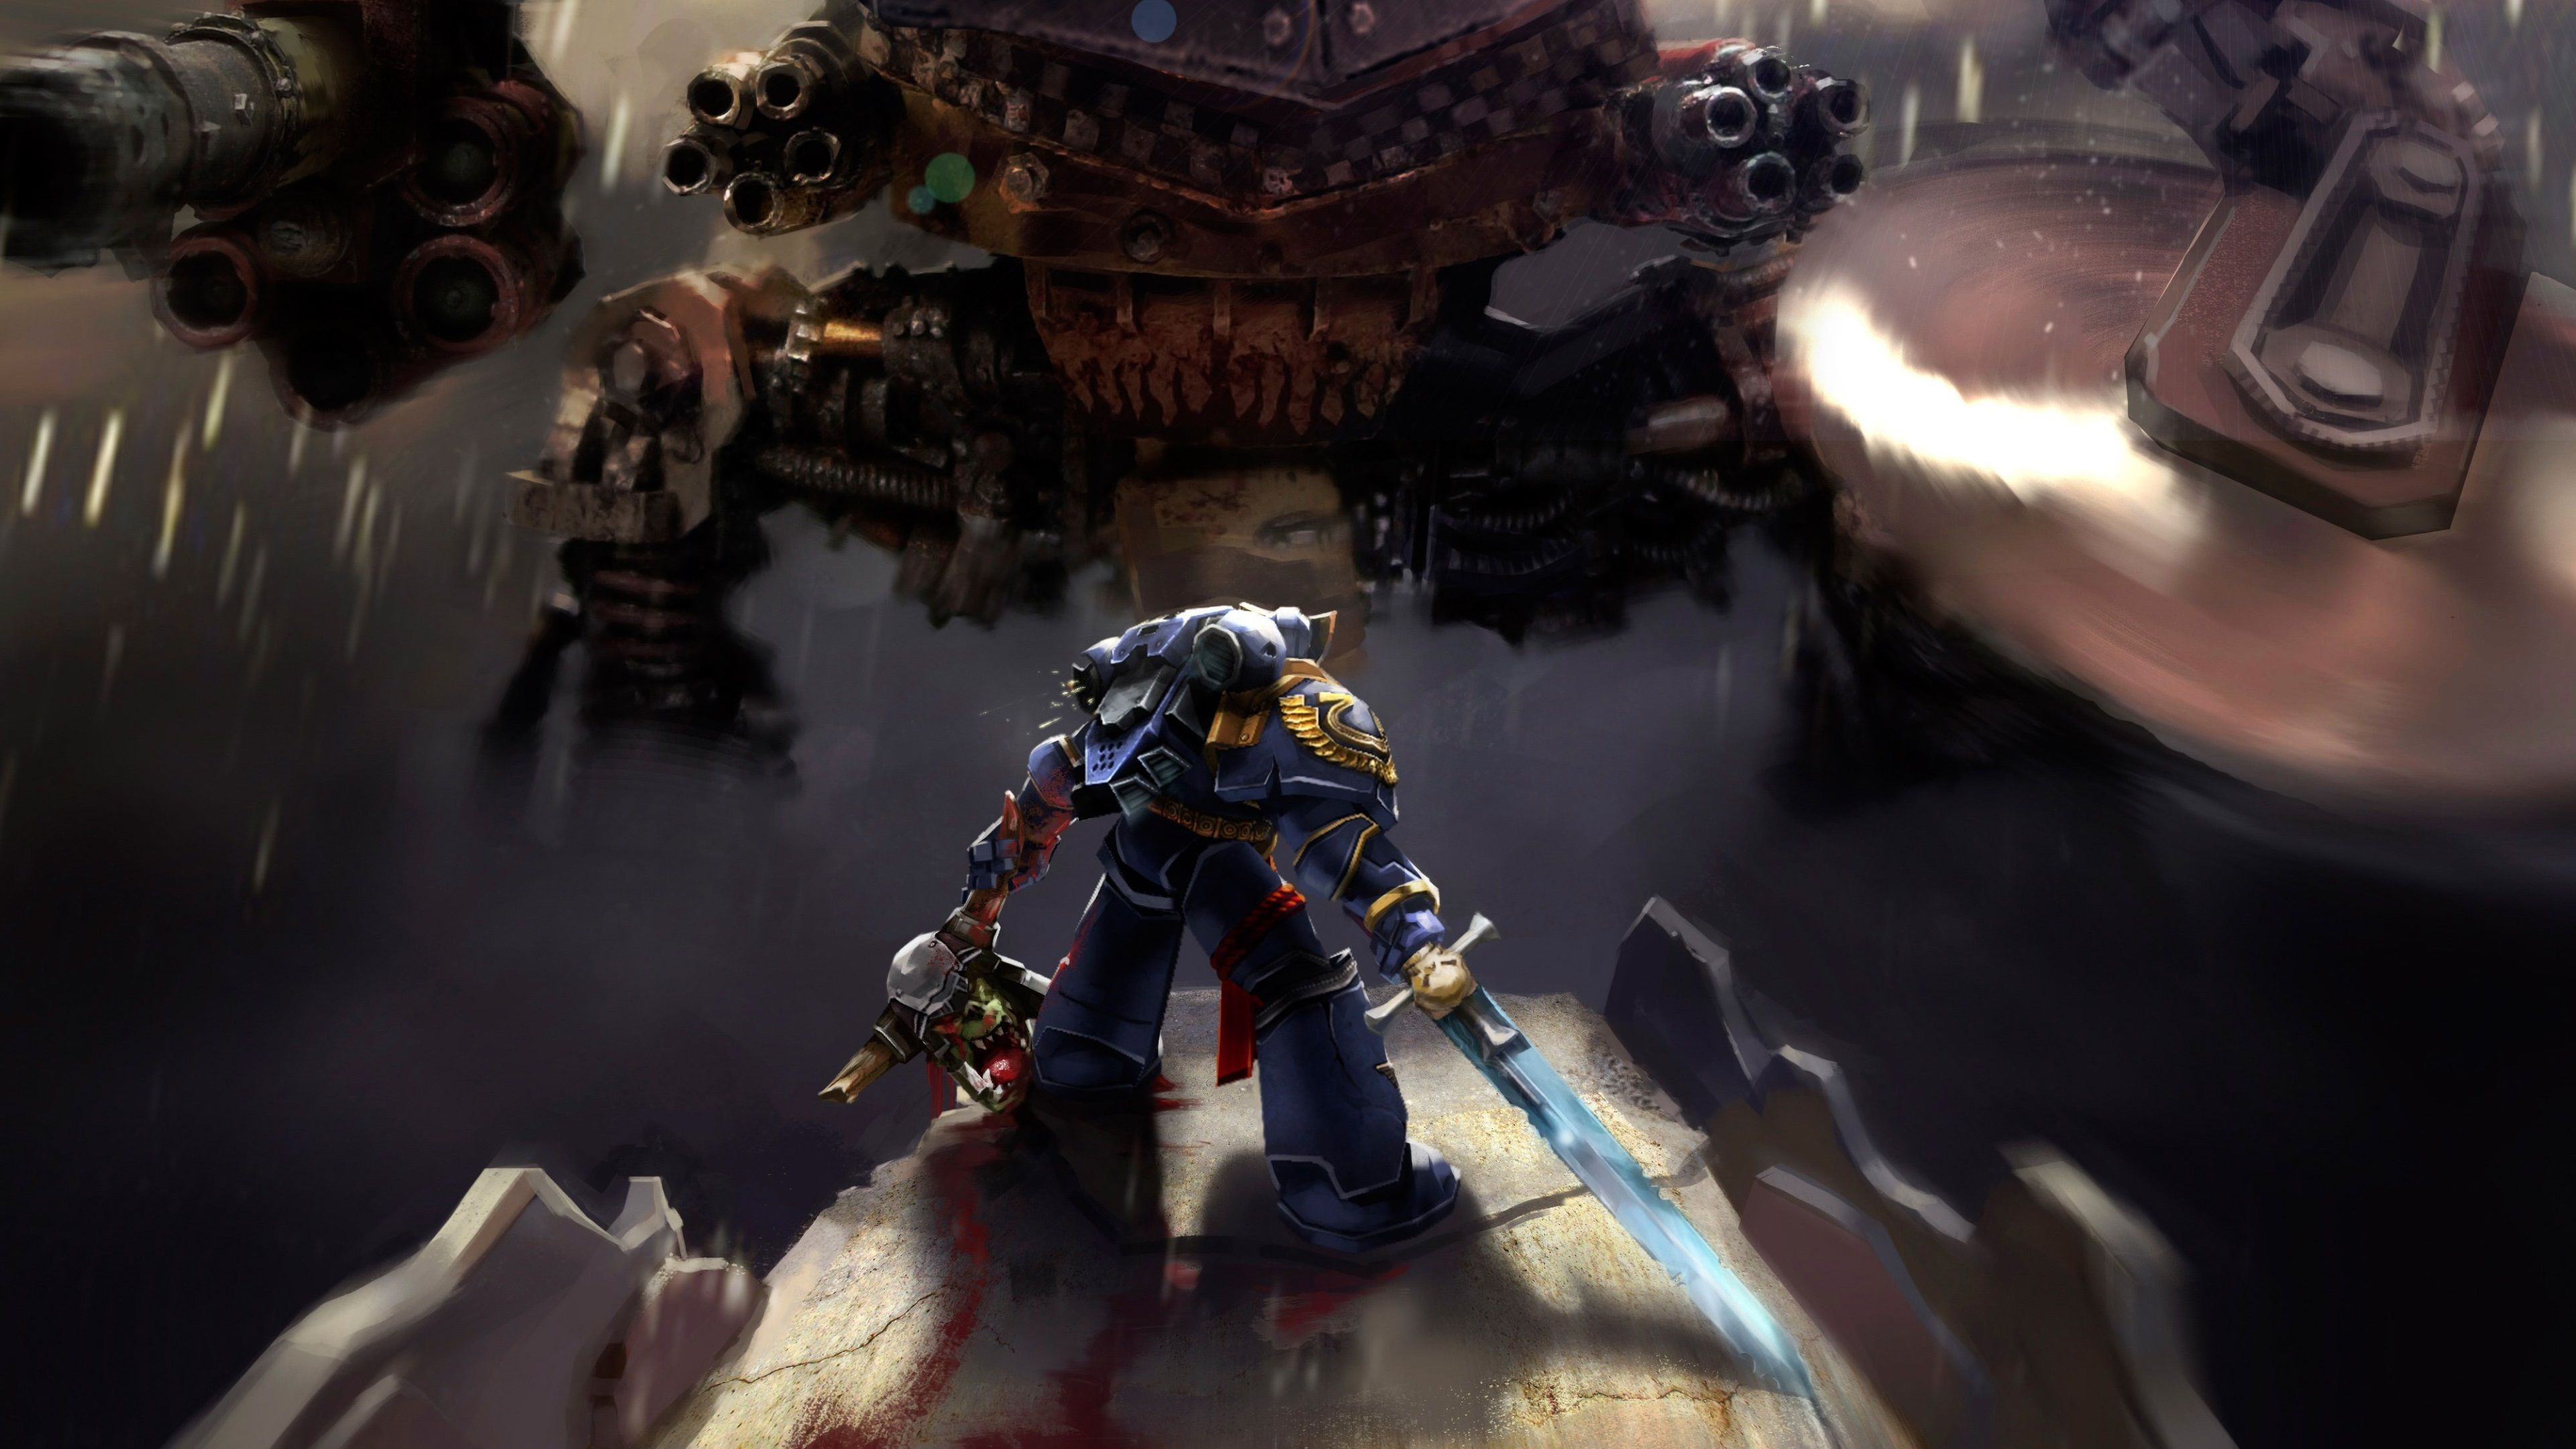 3840x2160 Warhammer 40k Space Marine 4k High Resolution Widescreen Wallpaper Space Marine Widescreen Wallpaper Cool Wallpaper